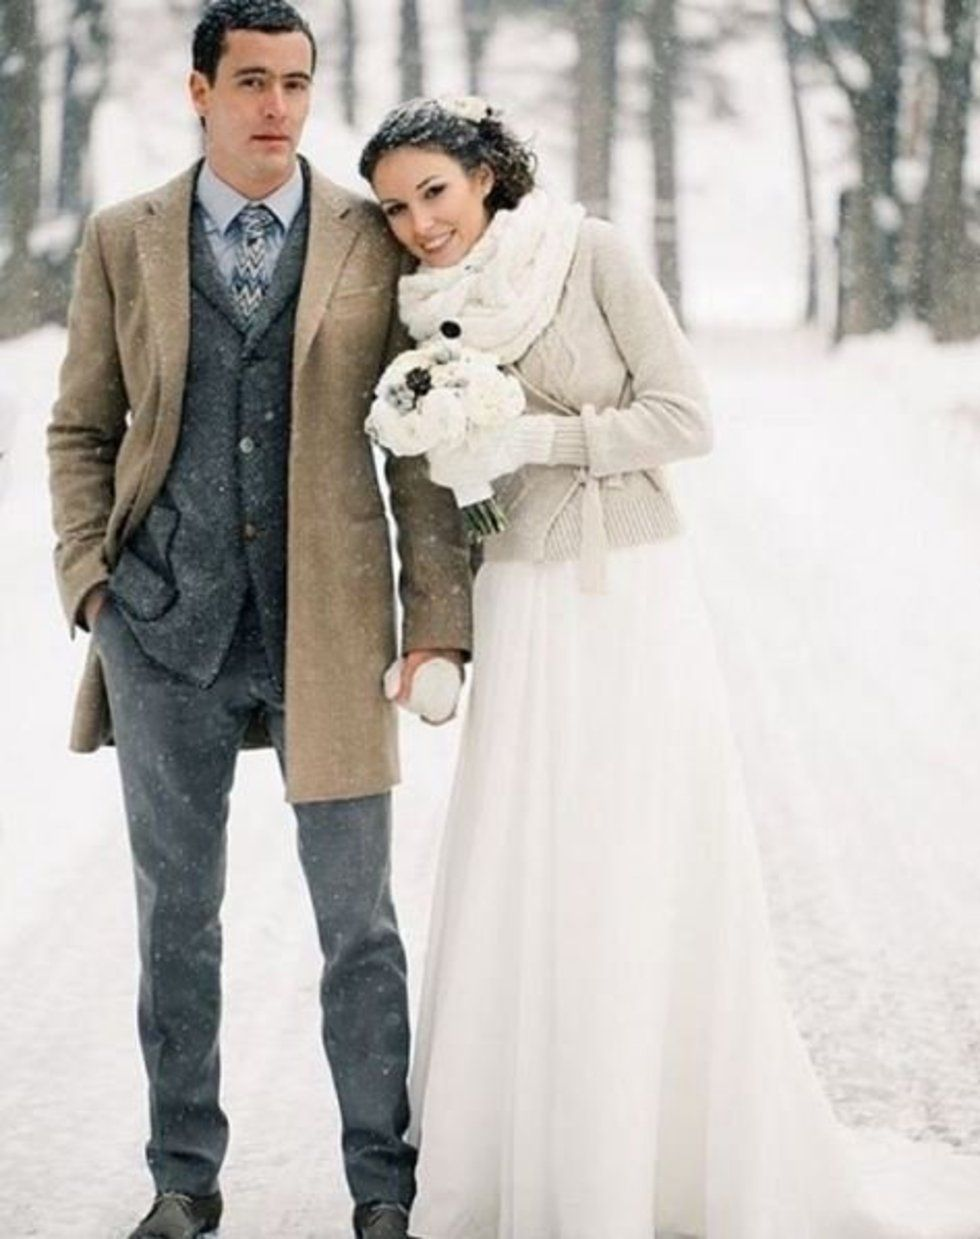 christmas wedding dresses From faux fur stoles to vows by candlelight the best winter wedding ideas from Instagram Stylist